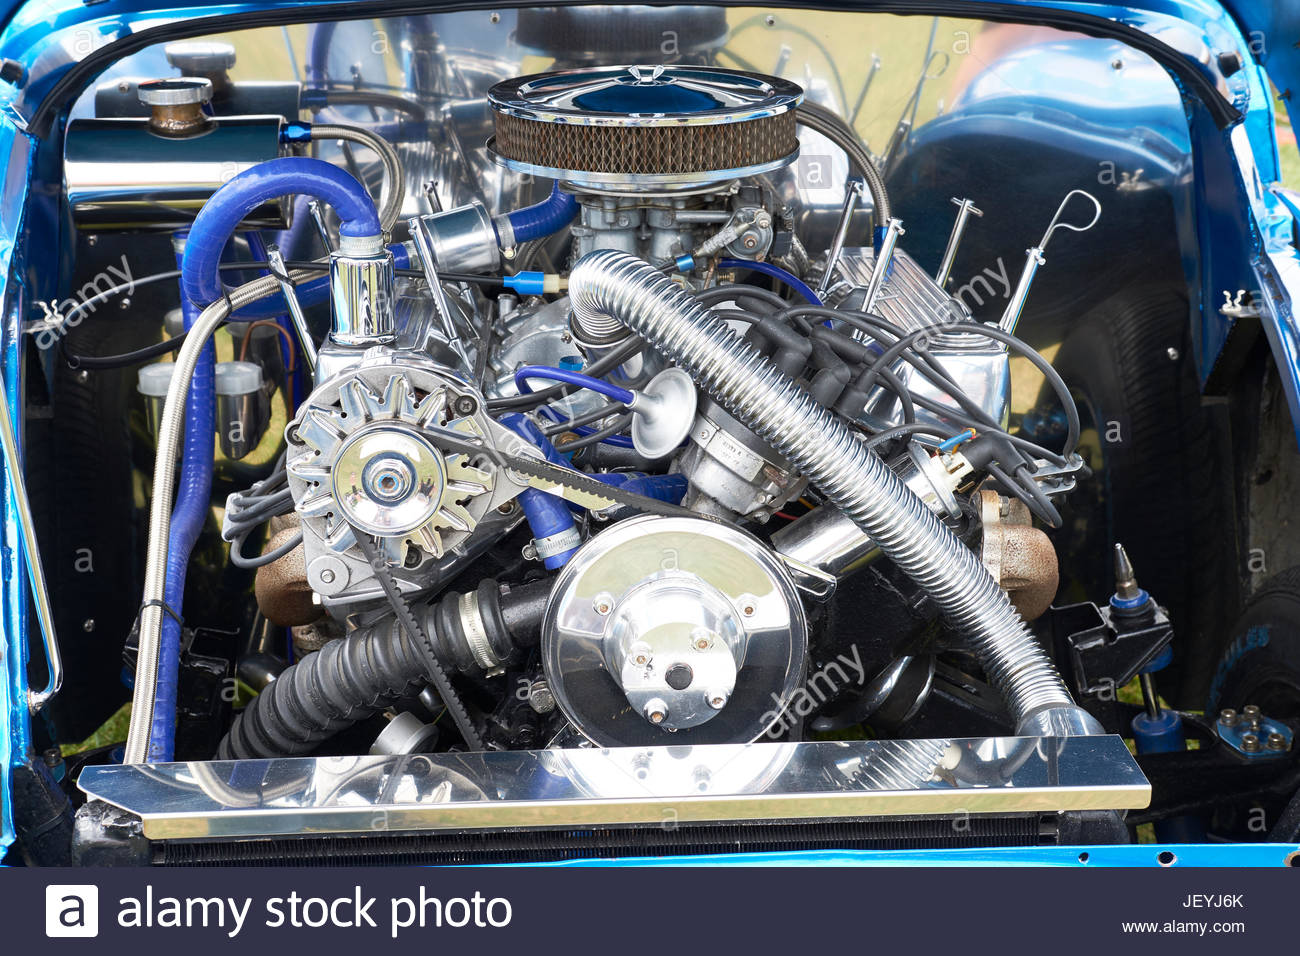 Close-up of a Hot Rod engine at the 2017 Haynes village 100 motor show, Haynes, Bedfordshire, UK. Stock Photo